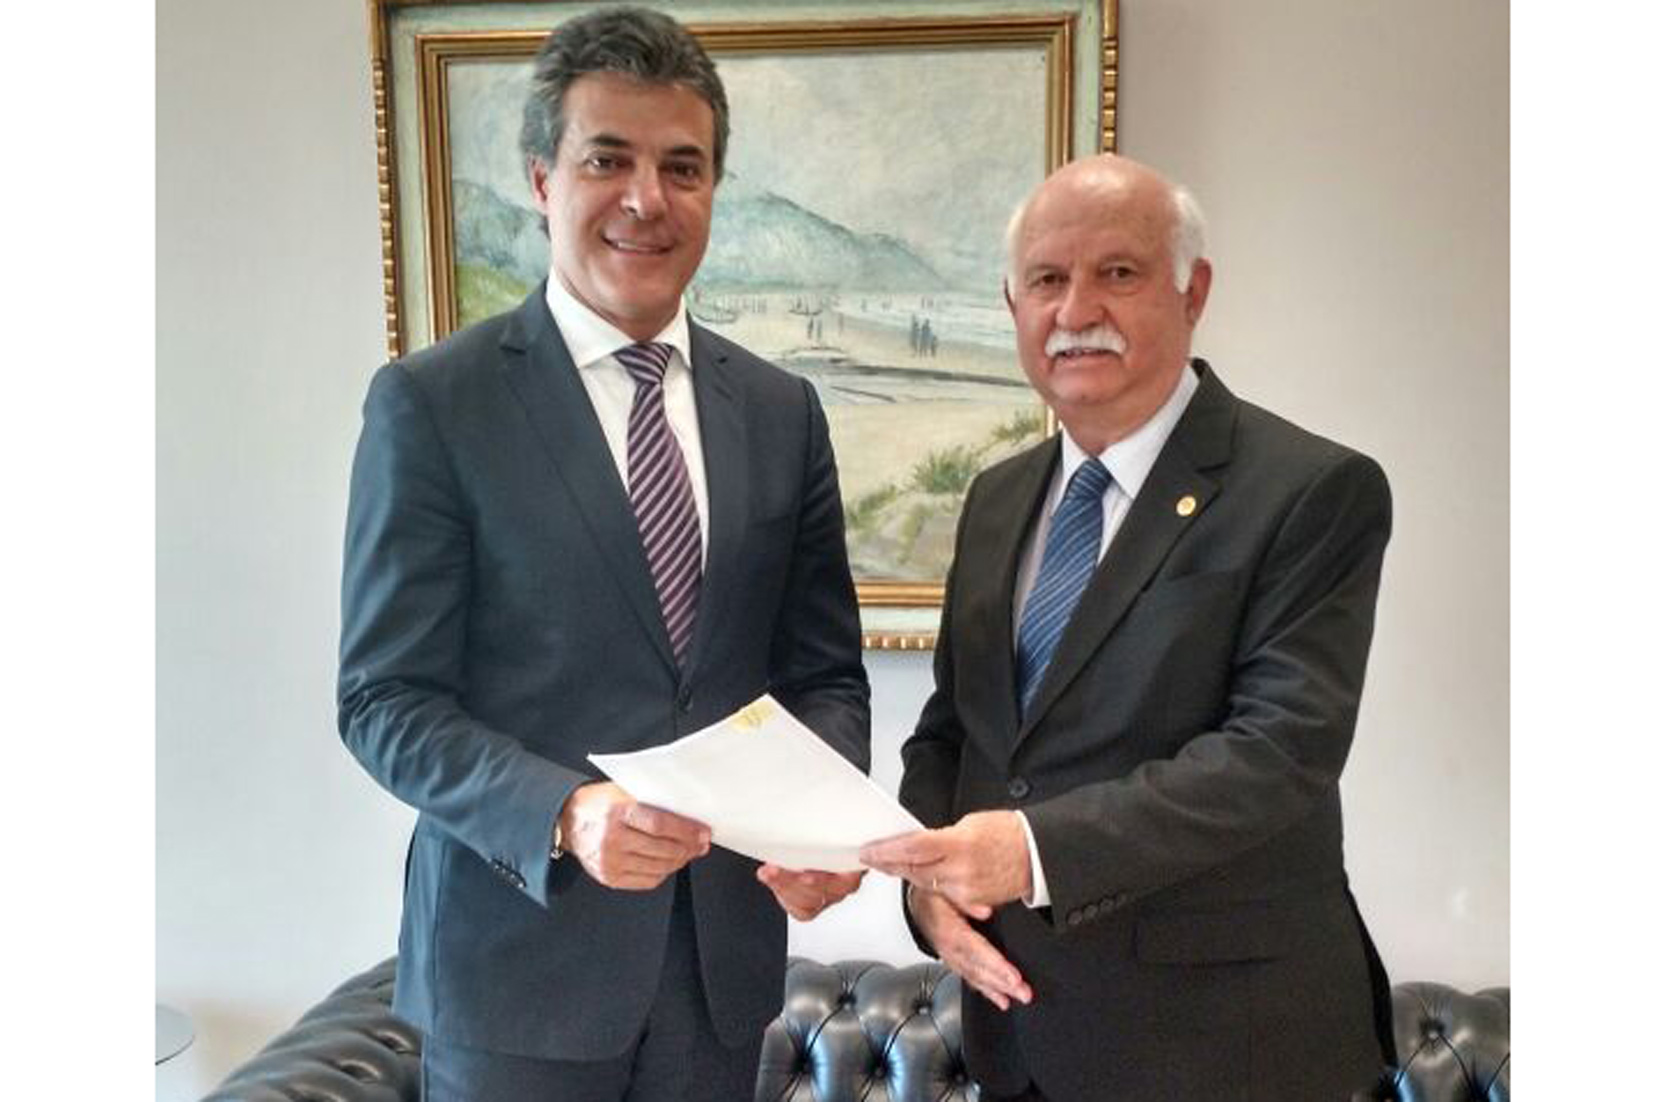 Presidente do TJPR visita Governador do Estado